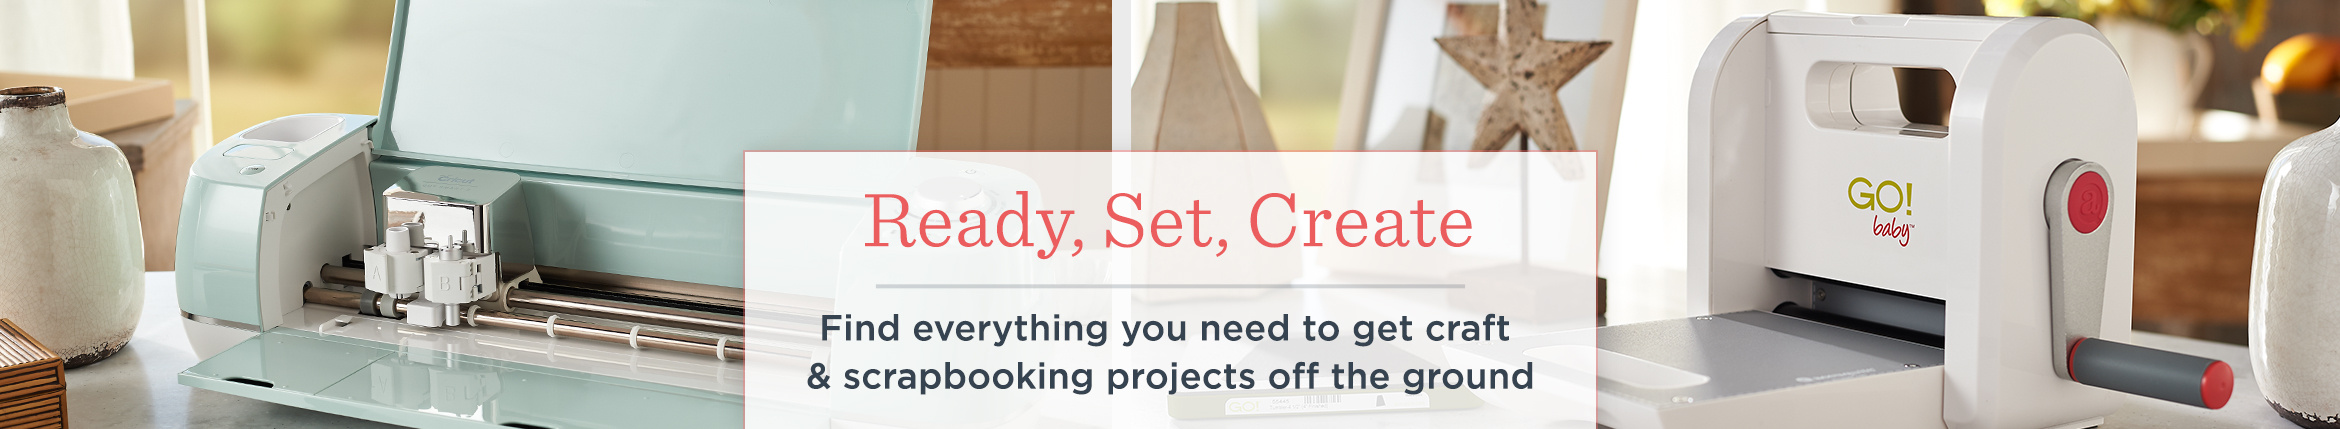 Ready, Set, Create. Find everything you need to get craft & scrapbooking projects off the ground